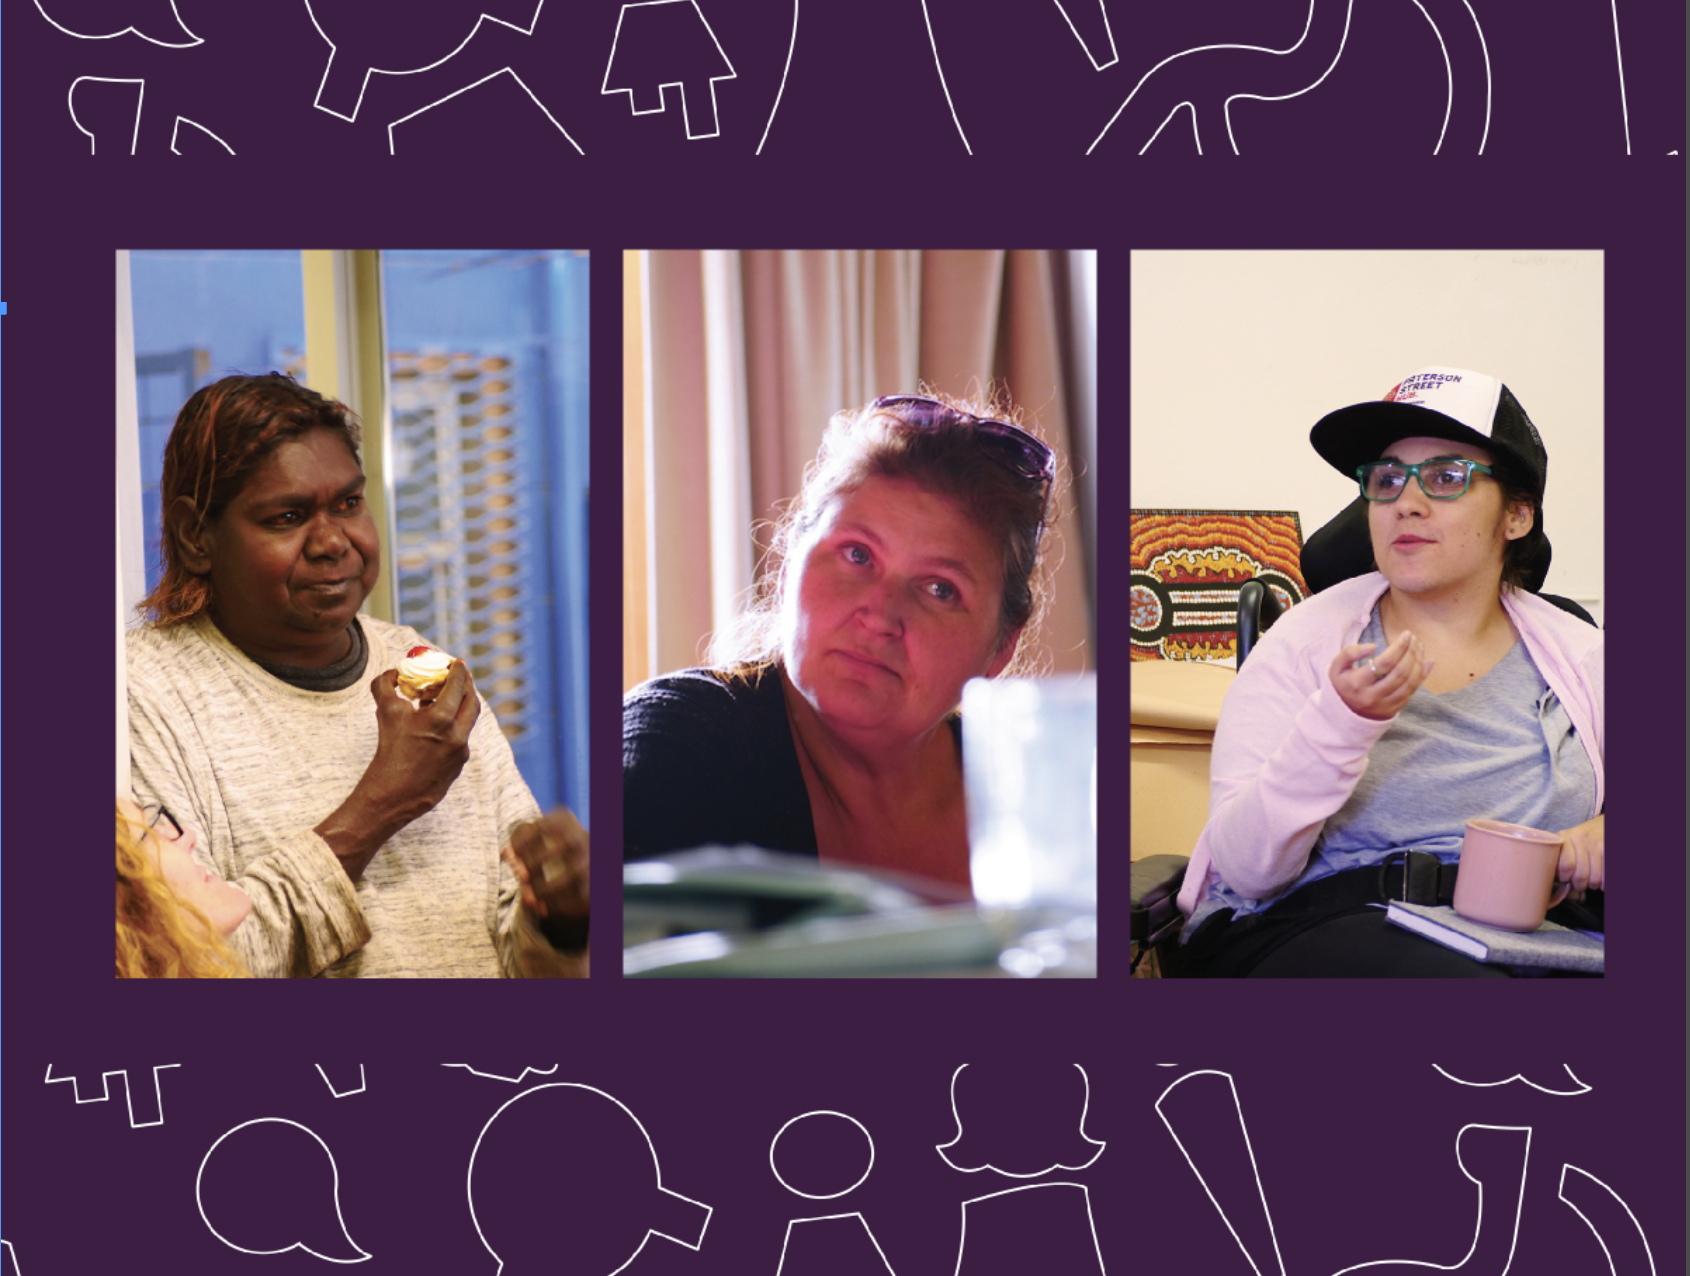 A section of the Annual Report front cover. It includes 3 photos of three different women with disabilities.